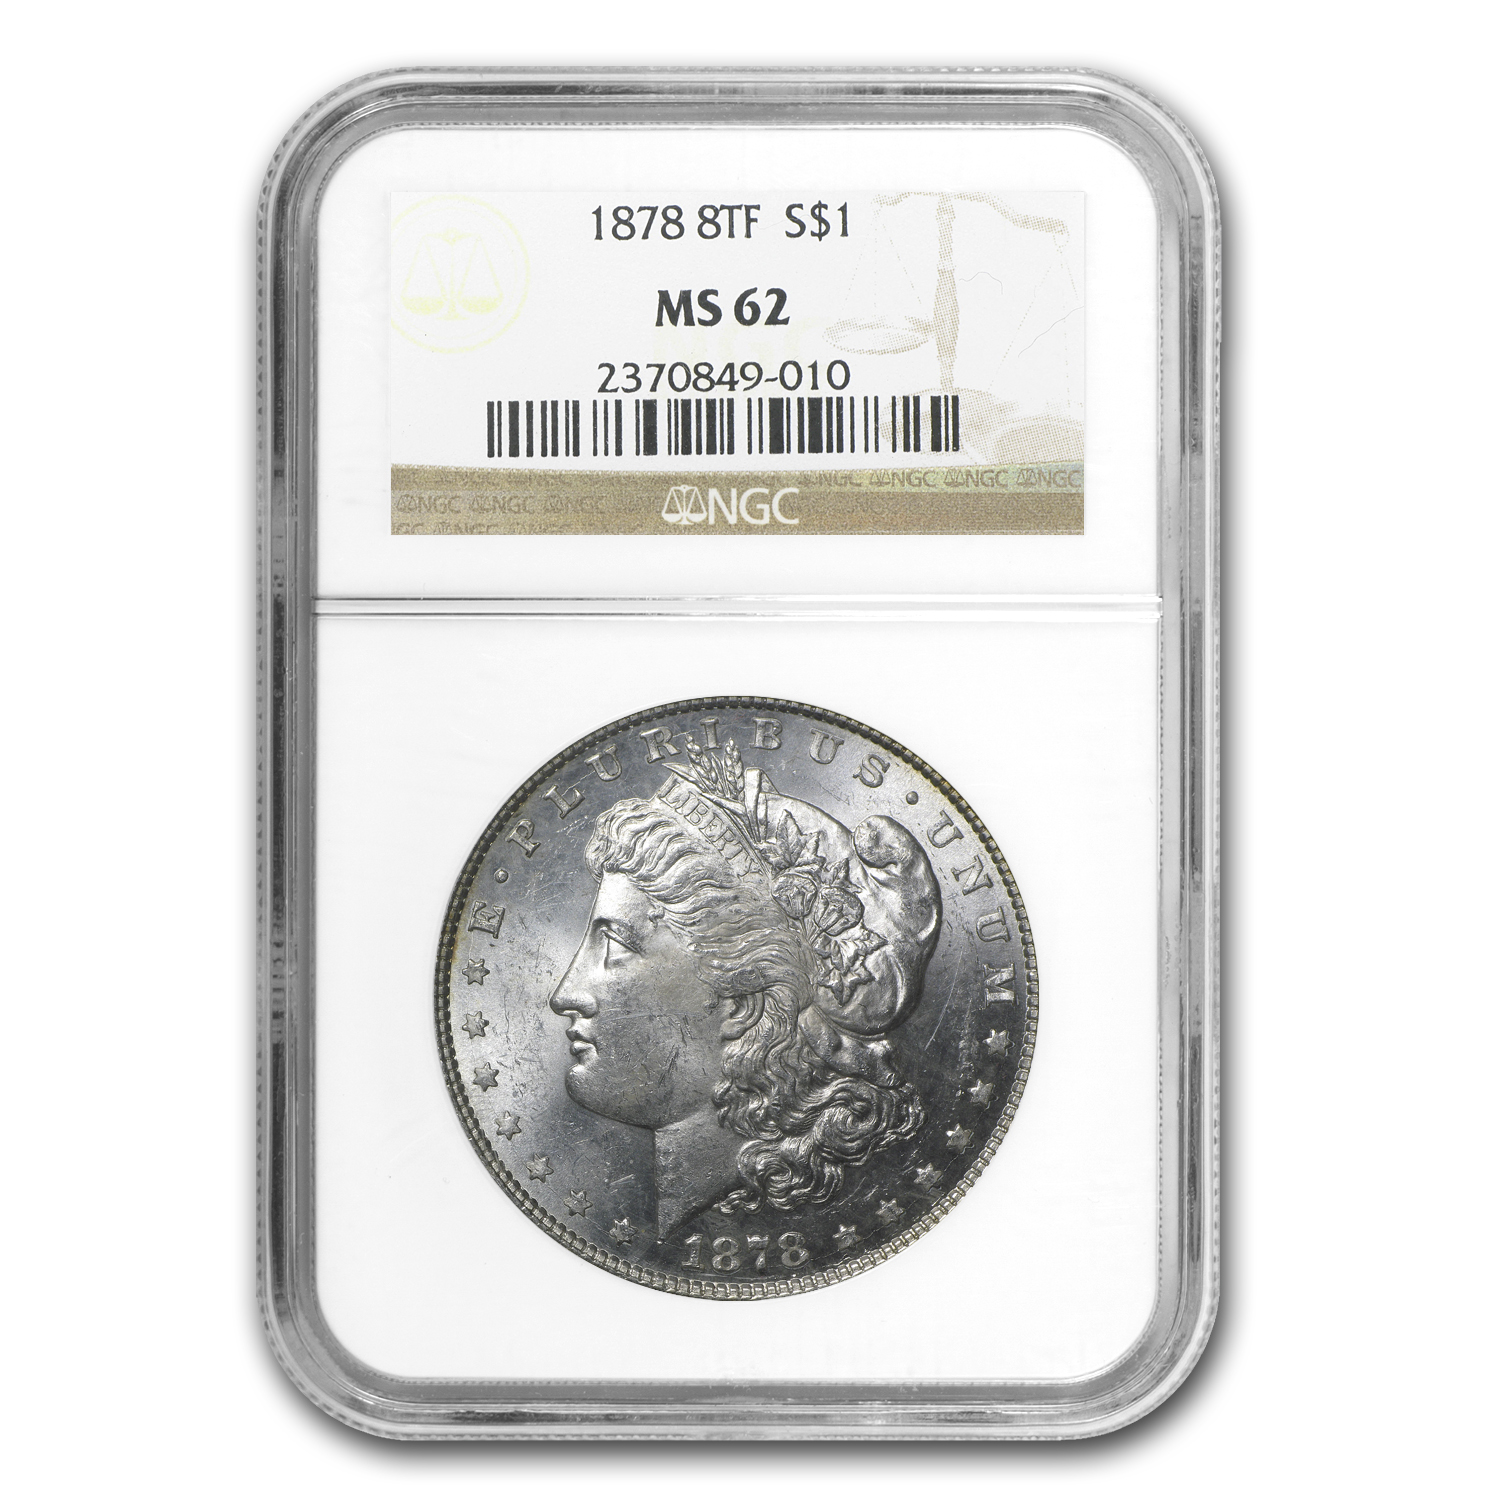 1878 Morgan Dollar 8 TF MS-62 NGC